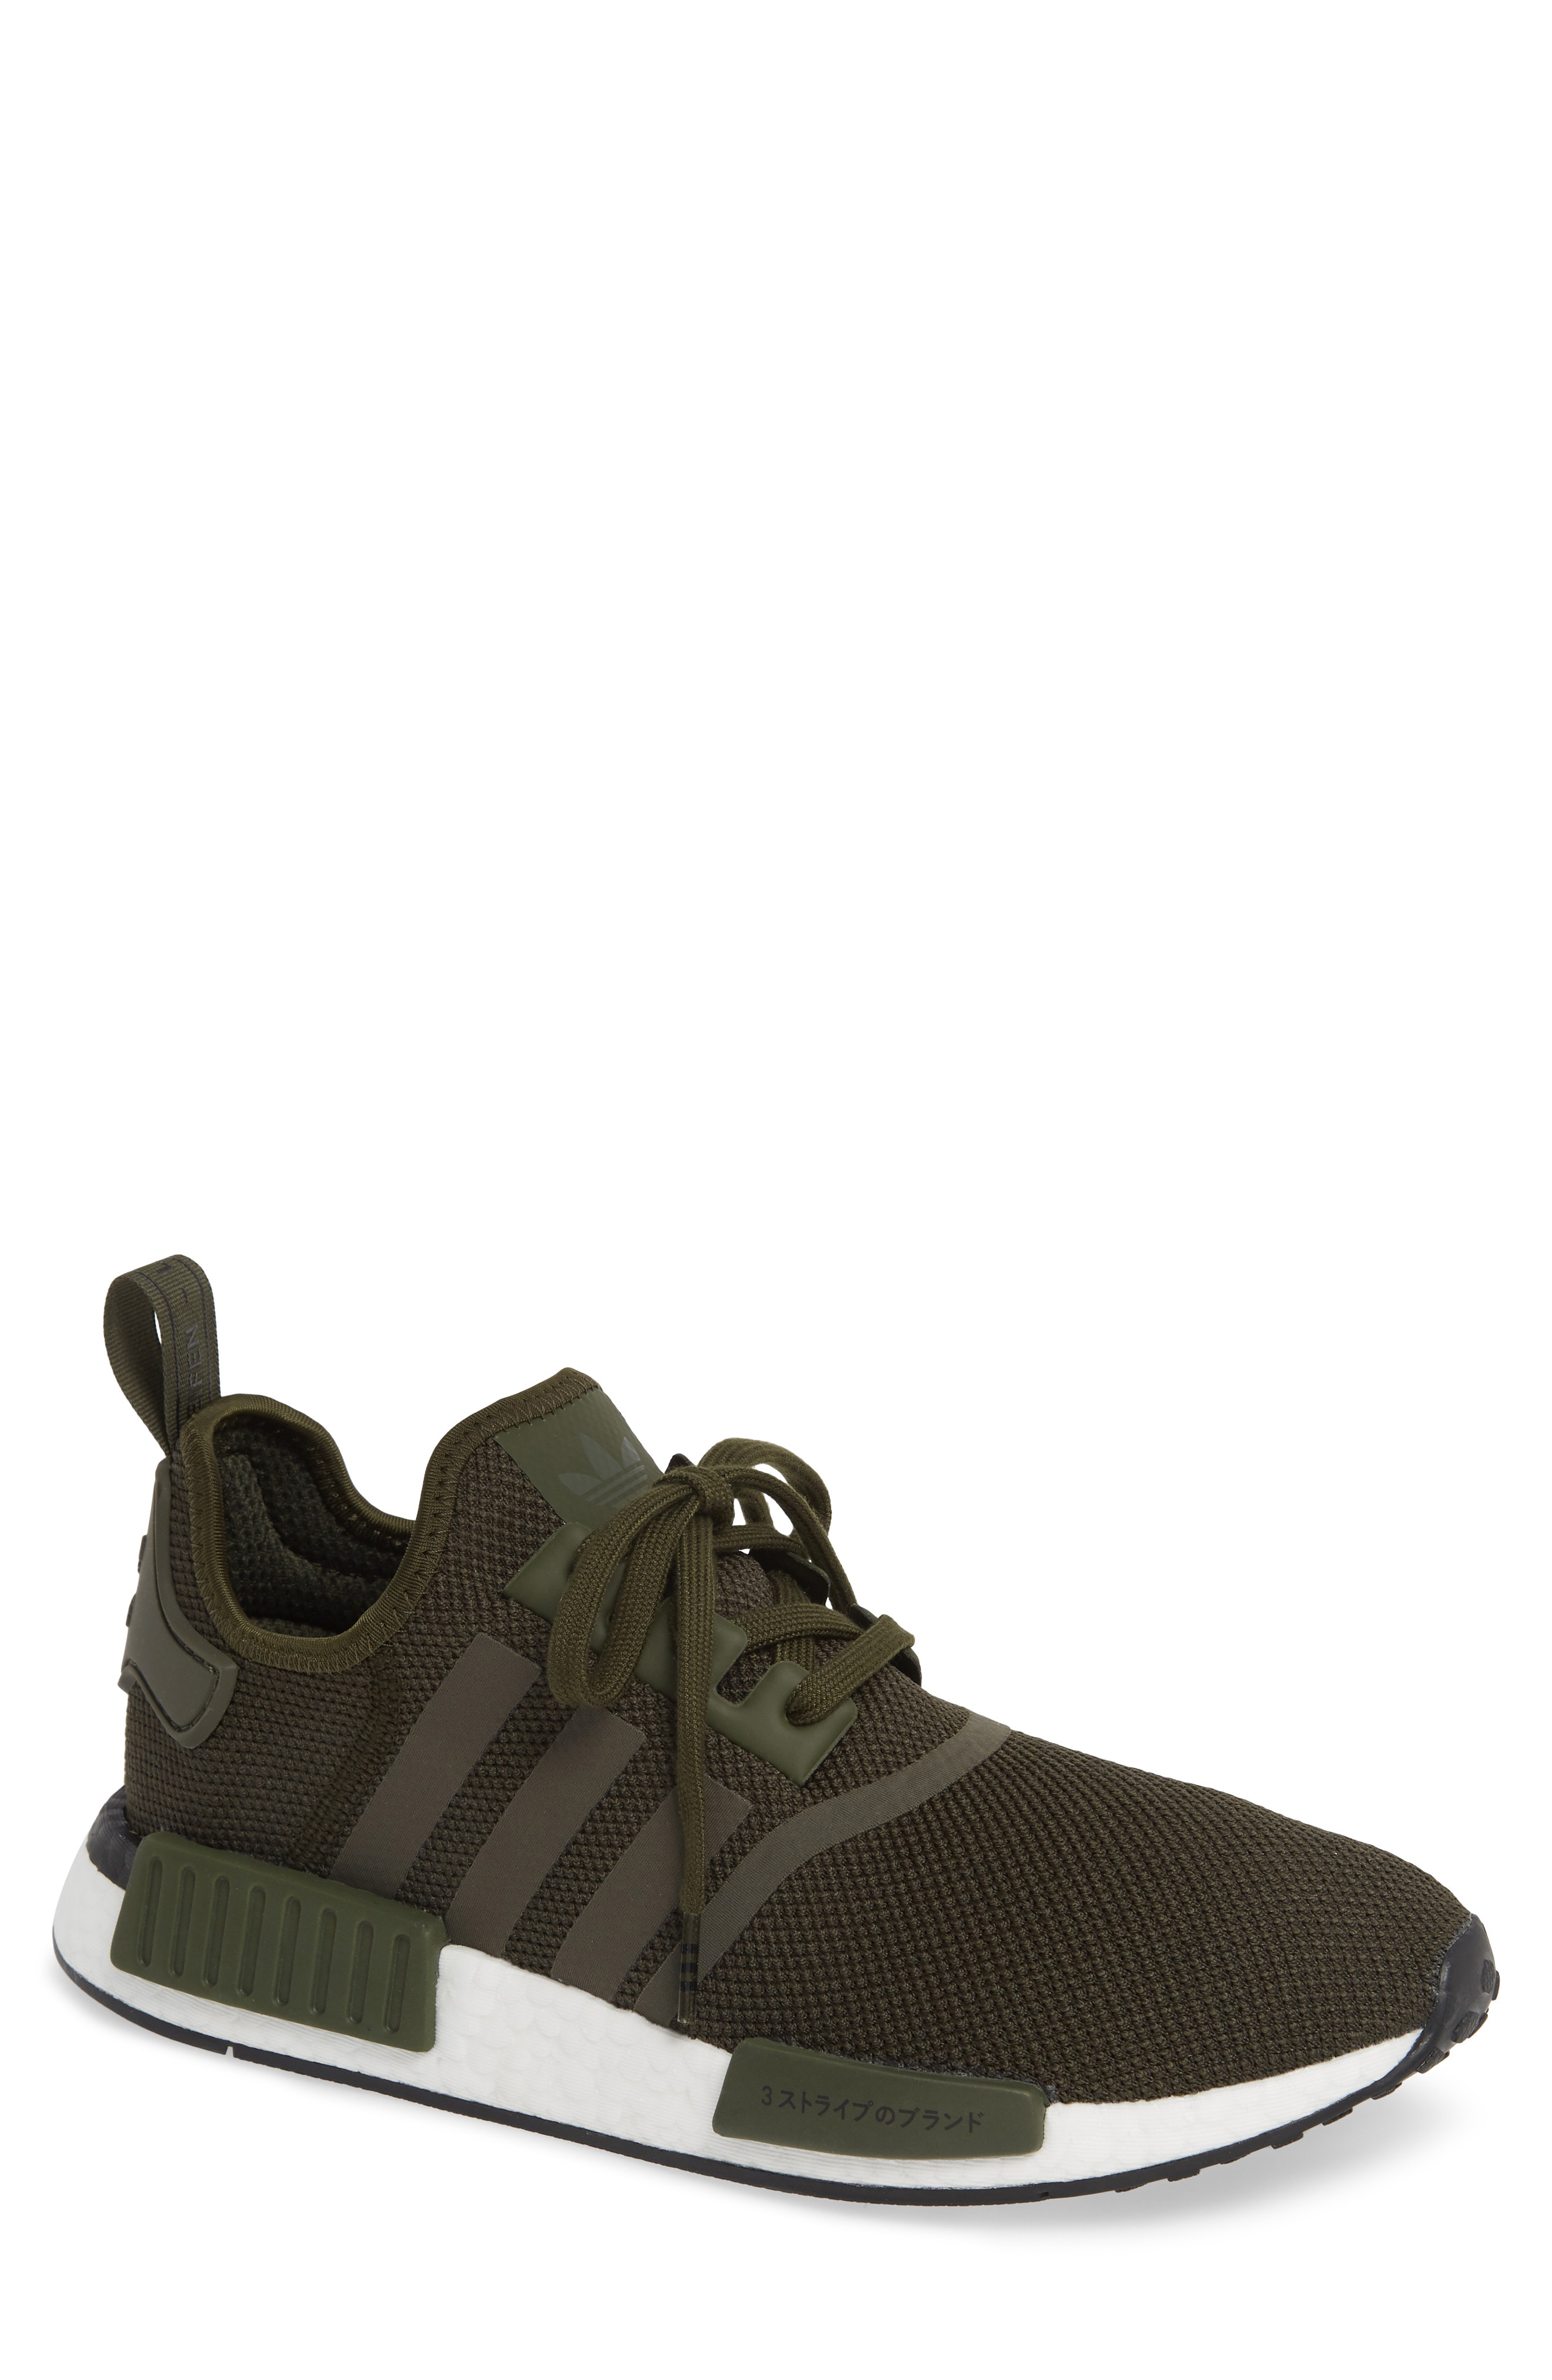 306df5dc2 Adidas Originals Adidas Men s Nmd R1 Casual Sneakers From Finish Line In Night  Cargo Night